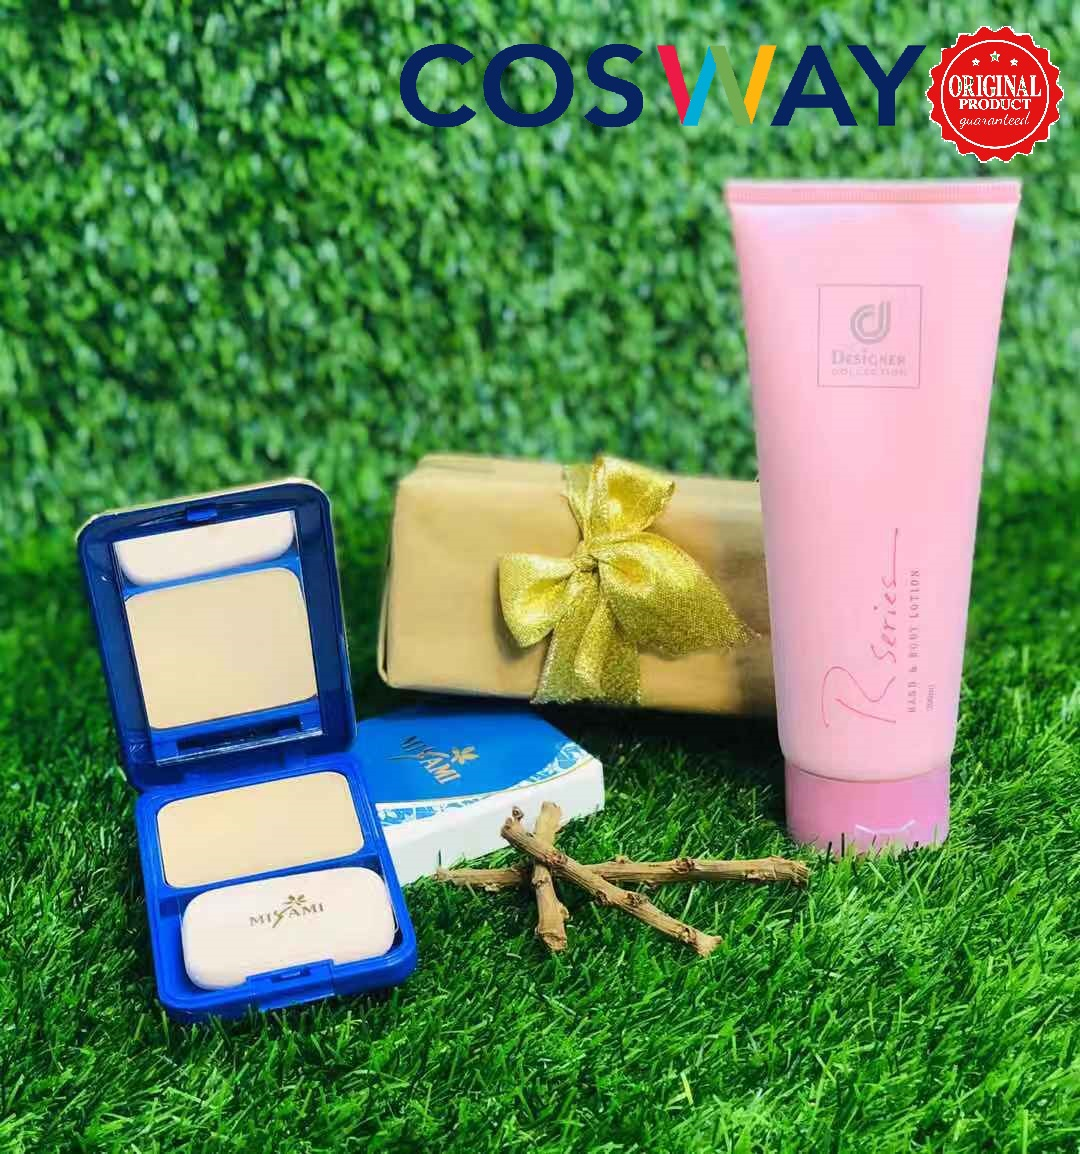 GS011-Cosway Designer Collection Body Lotion & Miyami Fundation - Gift Set 2in1 (Original Cosway)